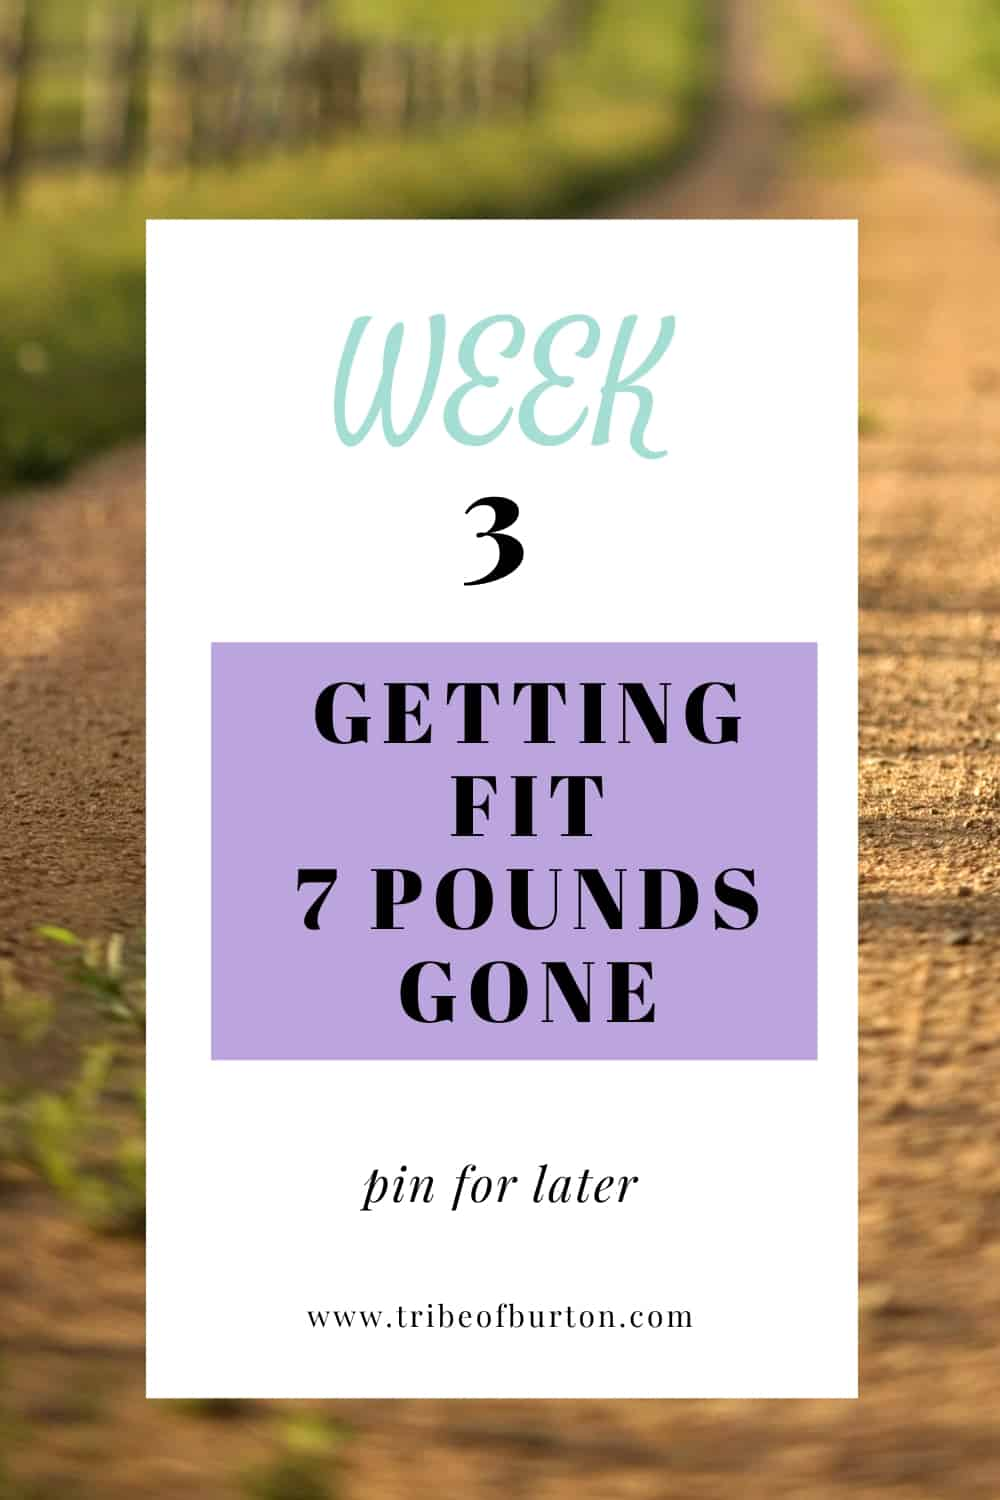 Week 3 Getting Fit Pinterest - 7 pounds gone